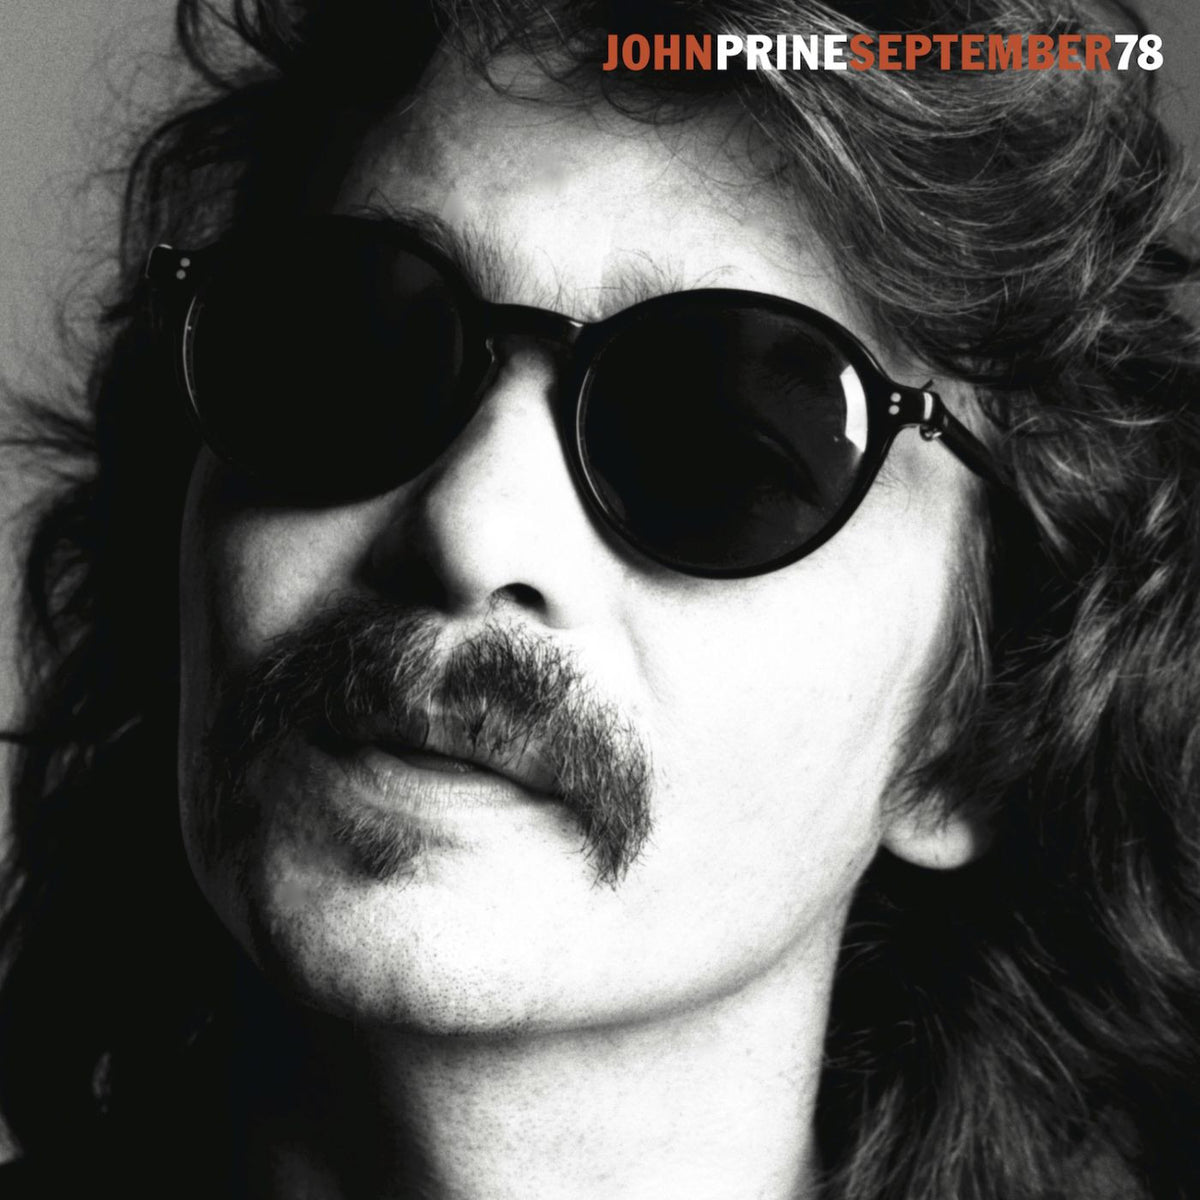 John Prine: September 78 Vinyl LP (Record Store Day)